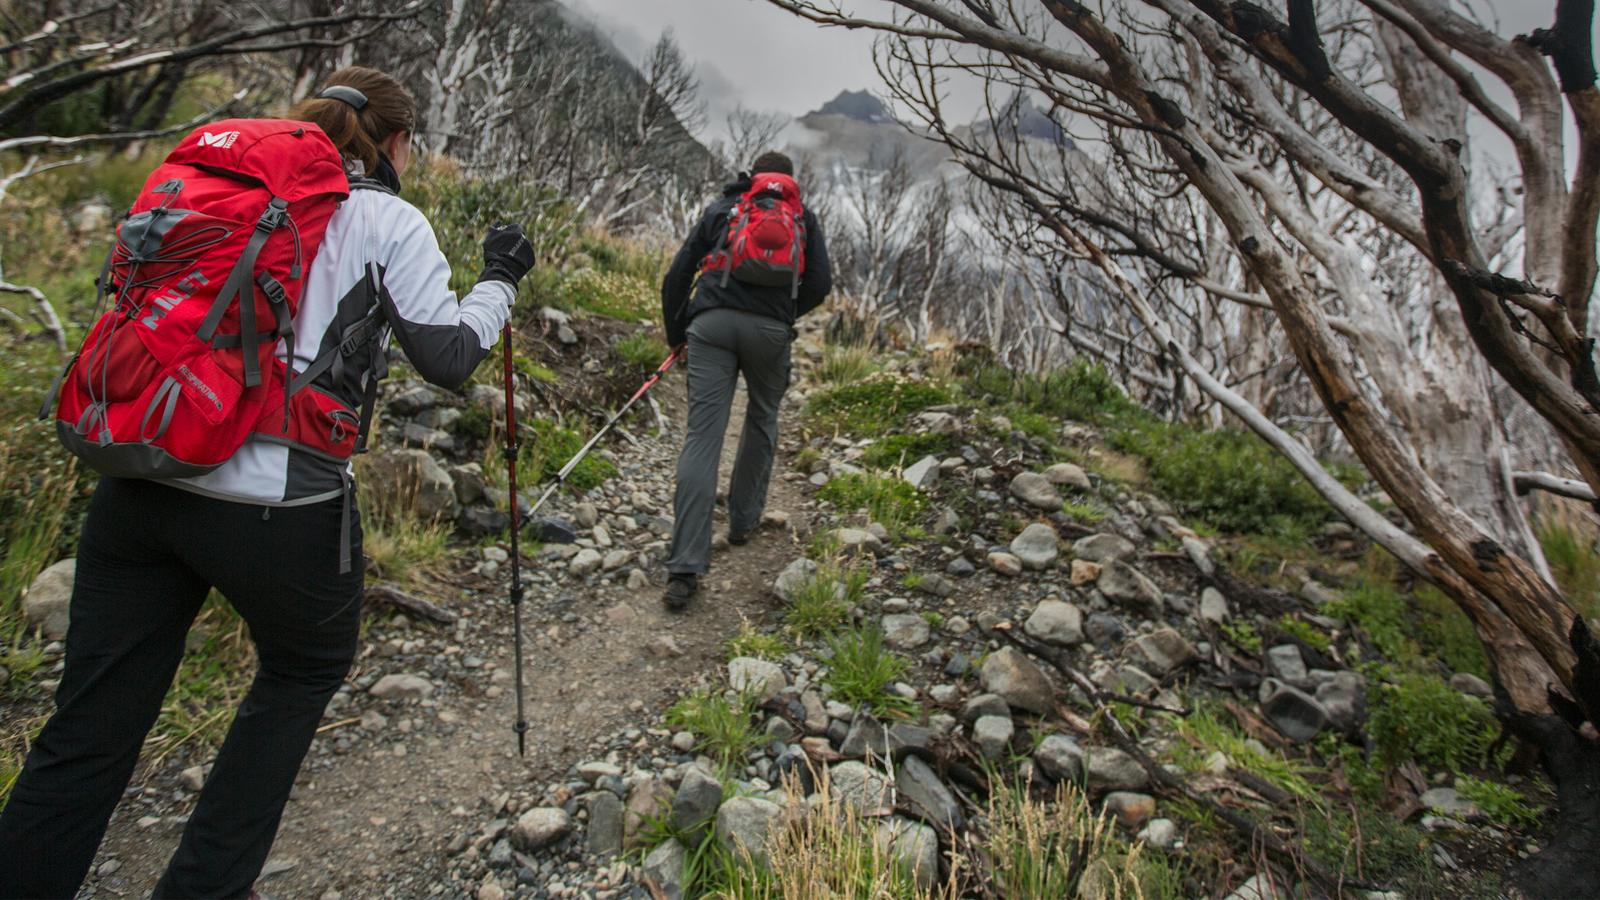 Travellers hiking in the Dead Forest in Patagonia